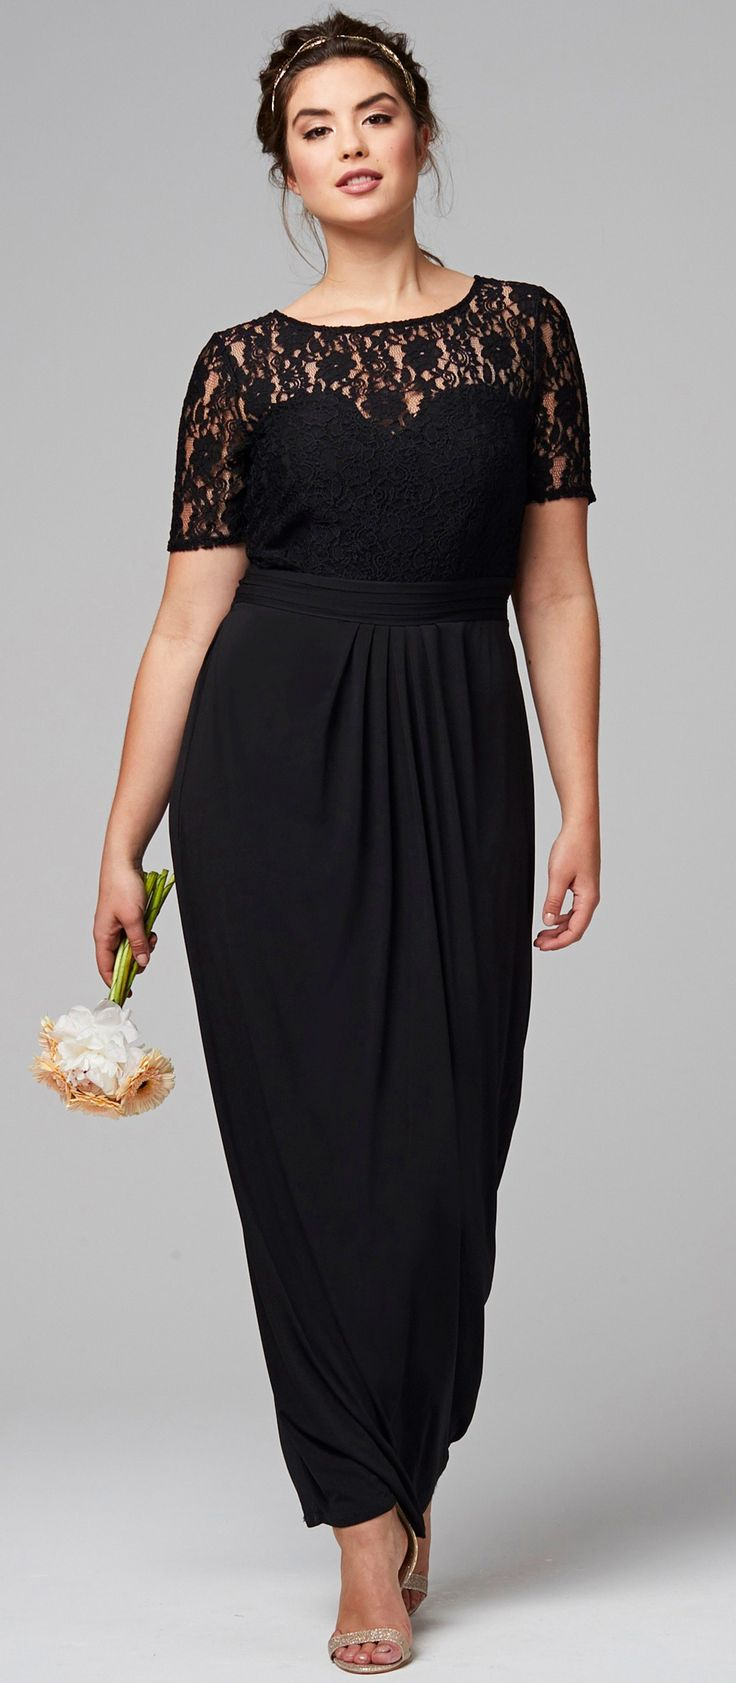 formal dress for wedding plus size best 25 plus size dresses ideas on 4314